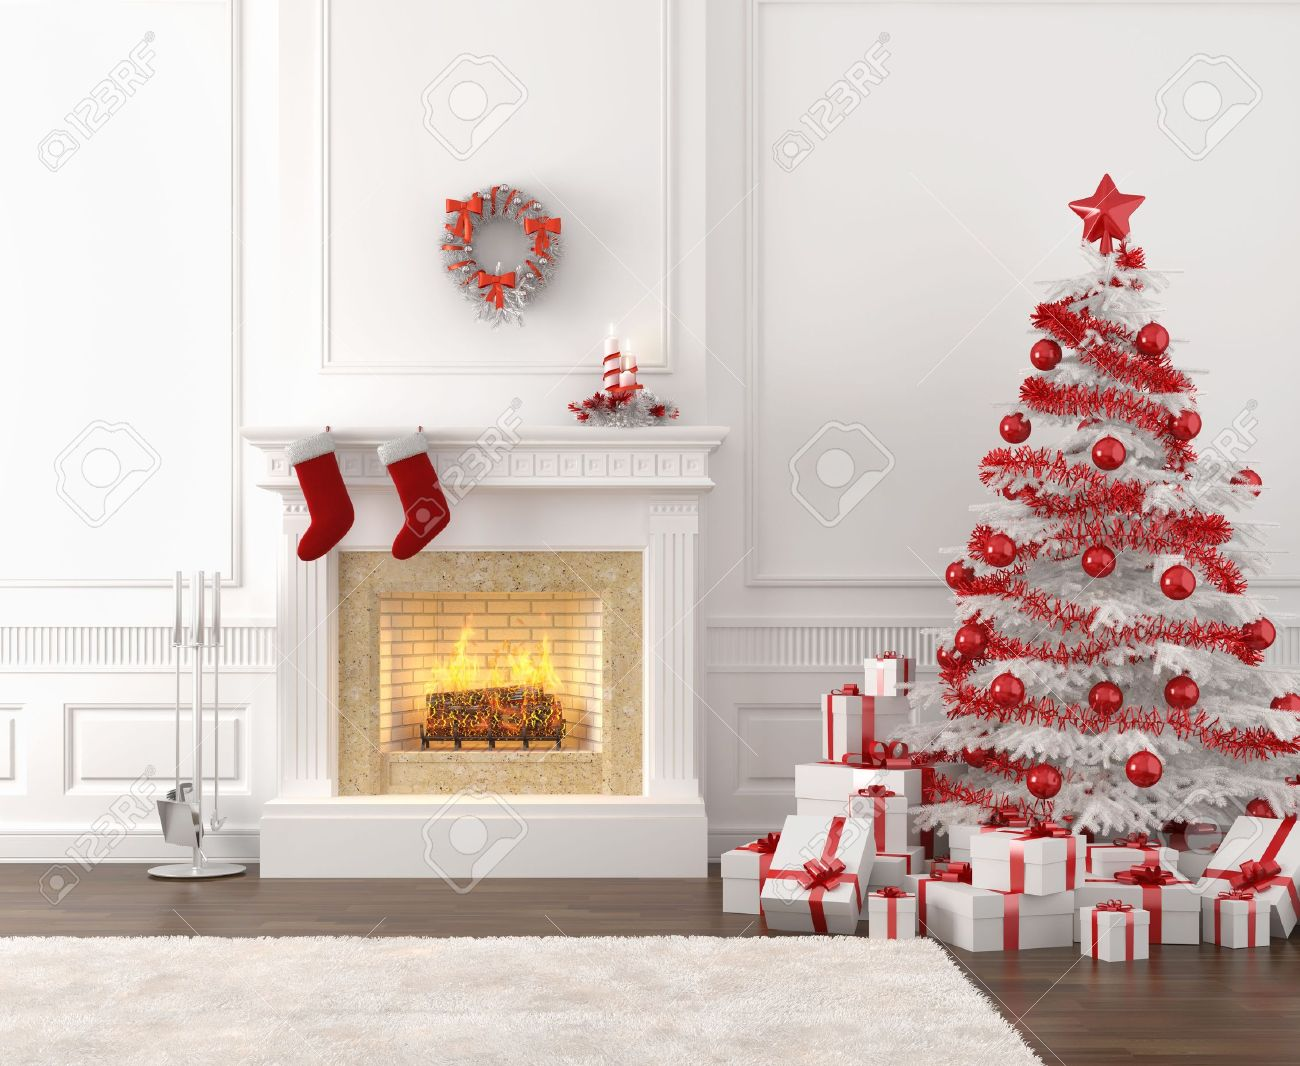 Modern Style Interior Of Fireplace With Christmas Tree And Presents ...